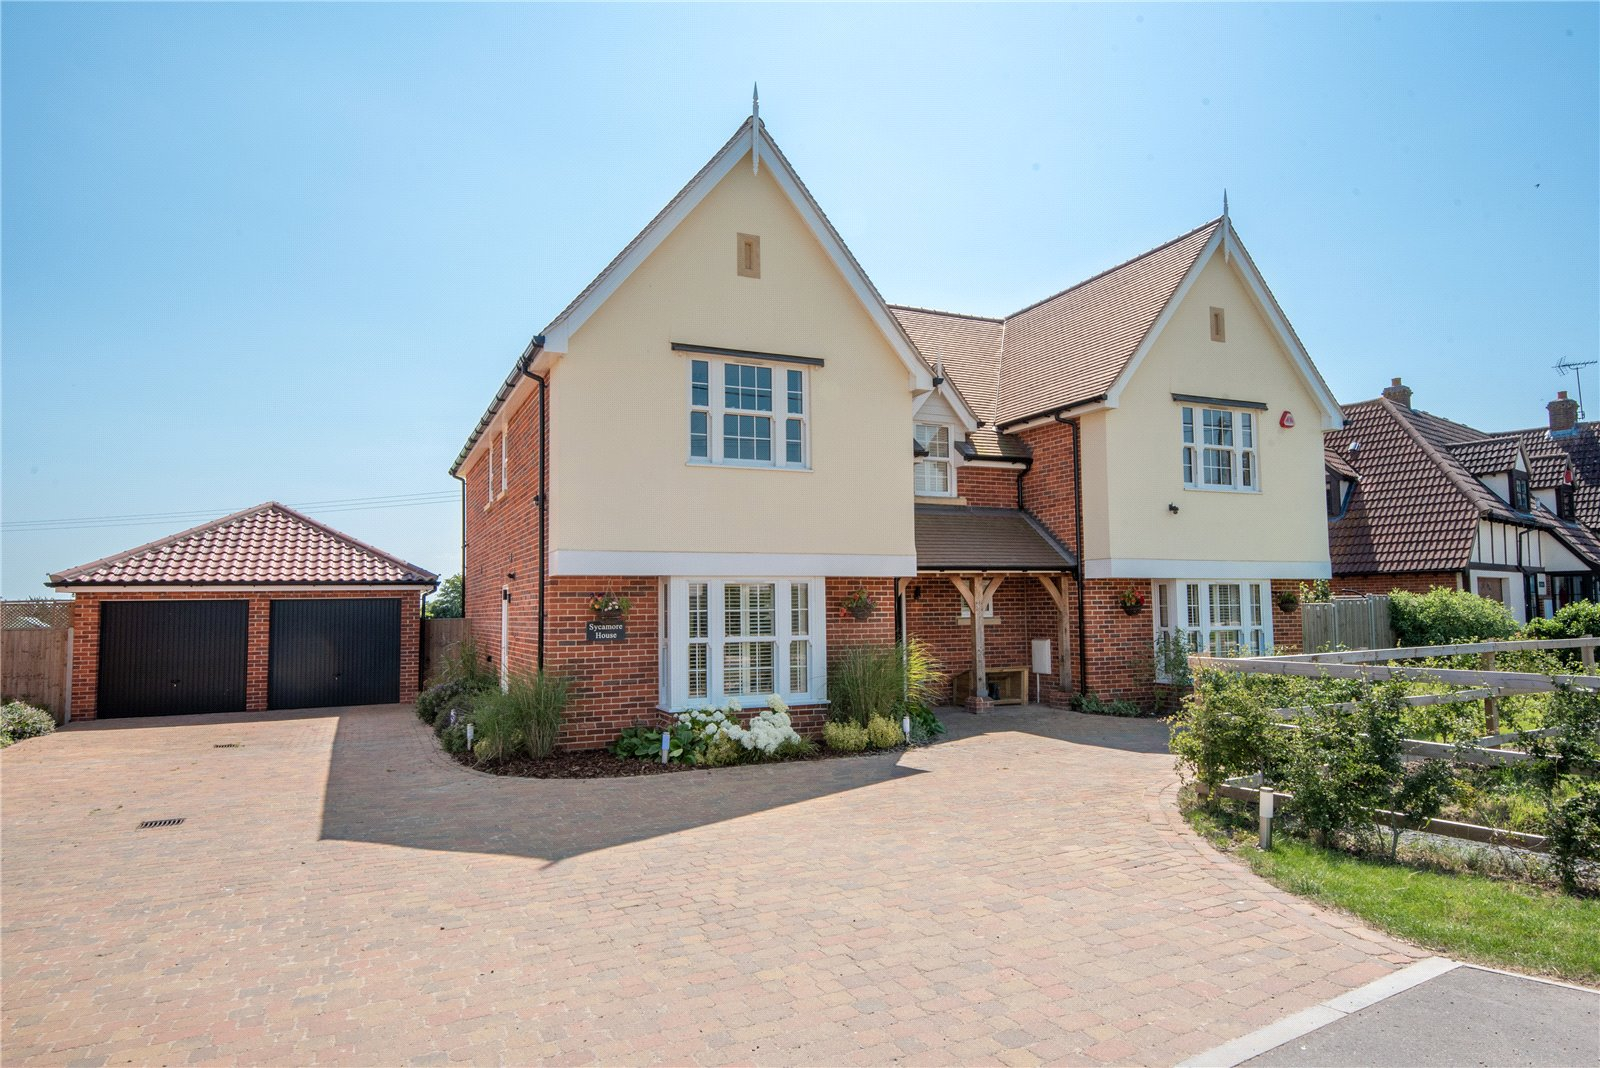 5 bed house for sale in Tendring Road, Little Bentley, Colchester  - Property Image 37